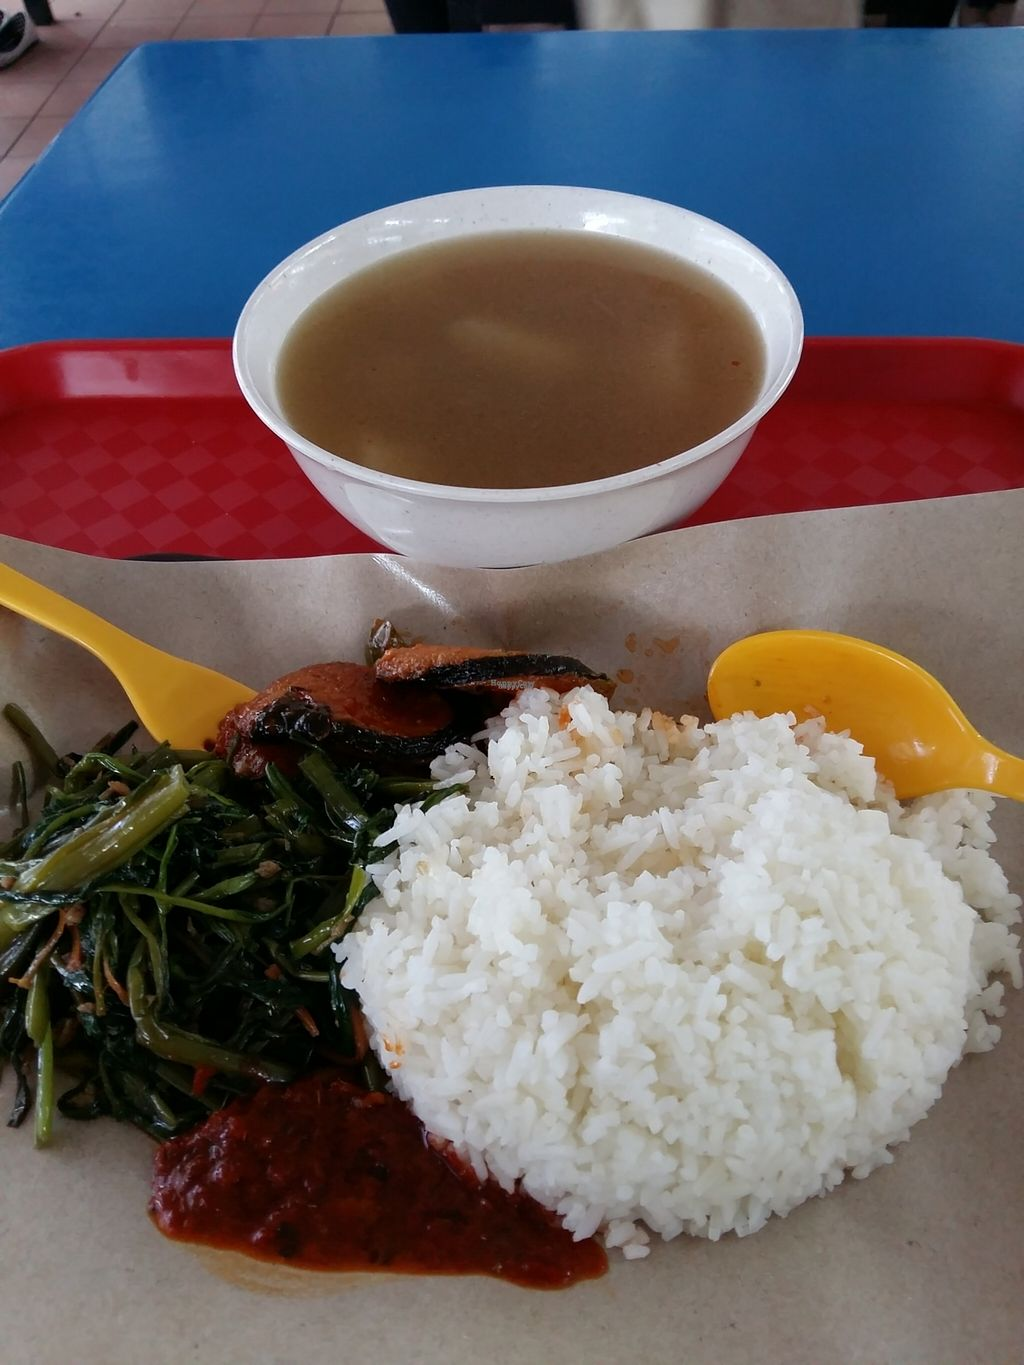 """Photo of CLOSED: The Vegetarian  by <a href=""""/members/profile/RichardLee"""">RichardLee</a> <br/>Soup + Rice Set <br/> October 15, 2016  - <a href='/contact/abuse/image/75342/182168'>Report</a>"""